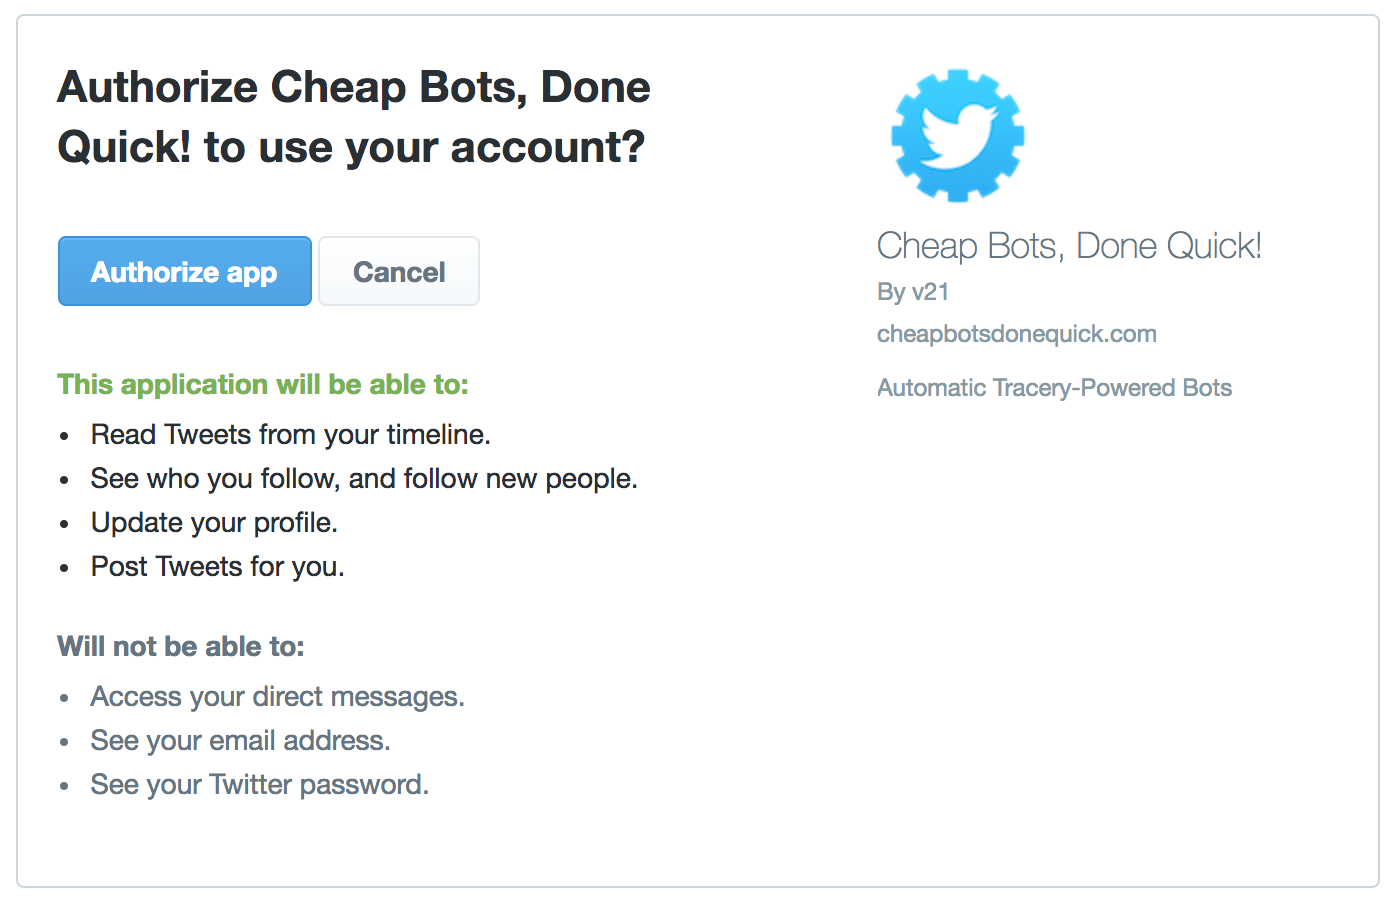 Image showing the screen Twitter uses to ask if you authorize the app to use your account